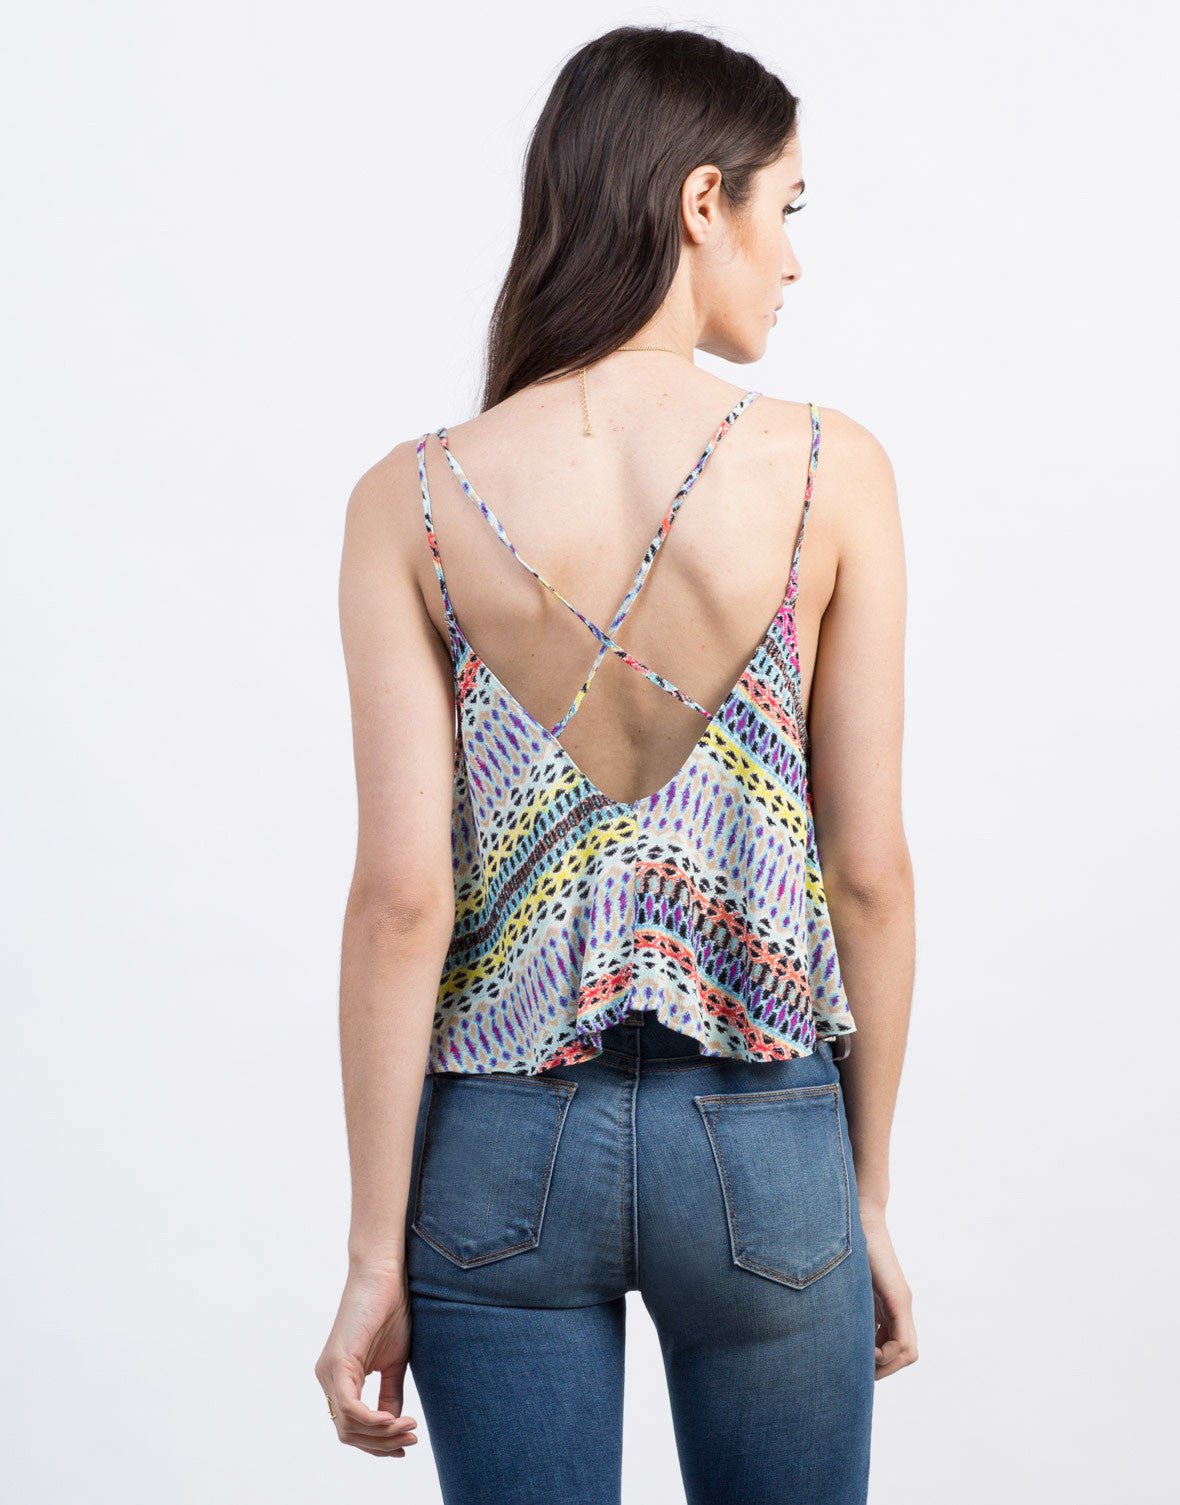 Back View of Multi Colored Printed Top